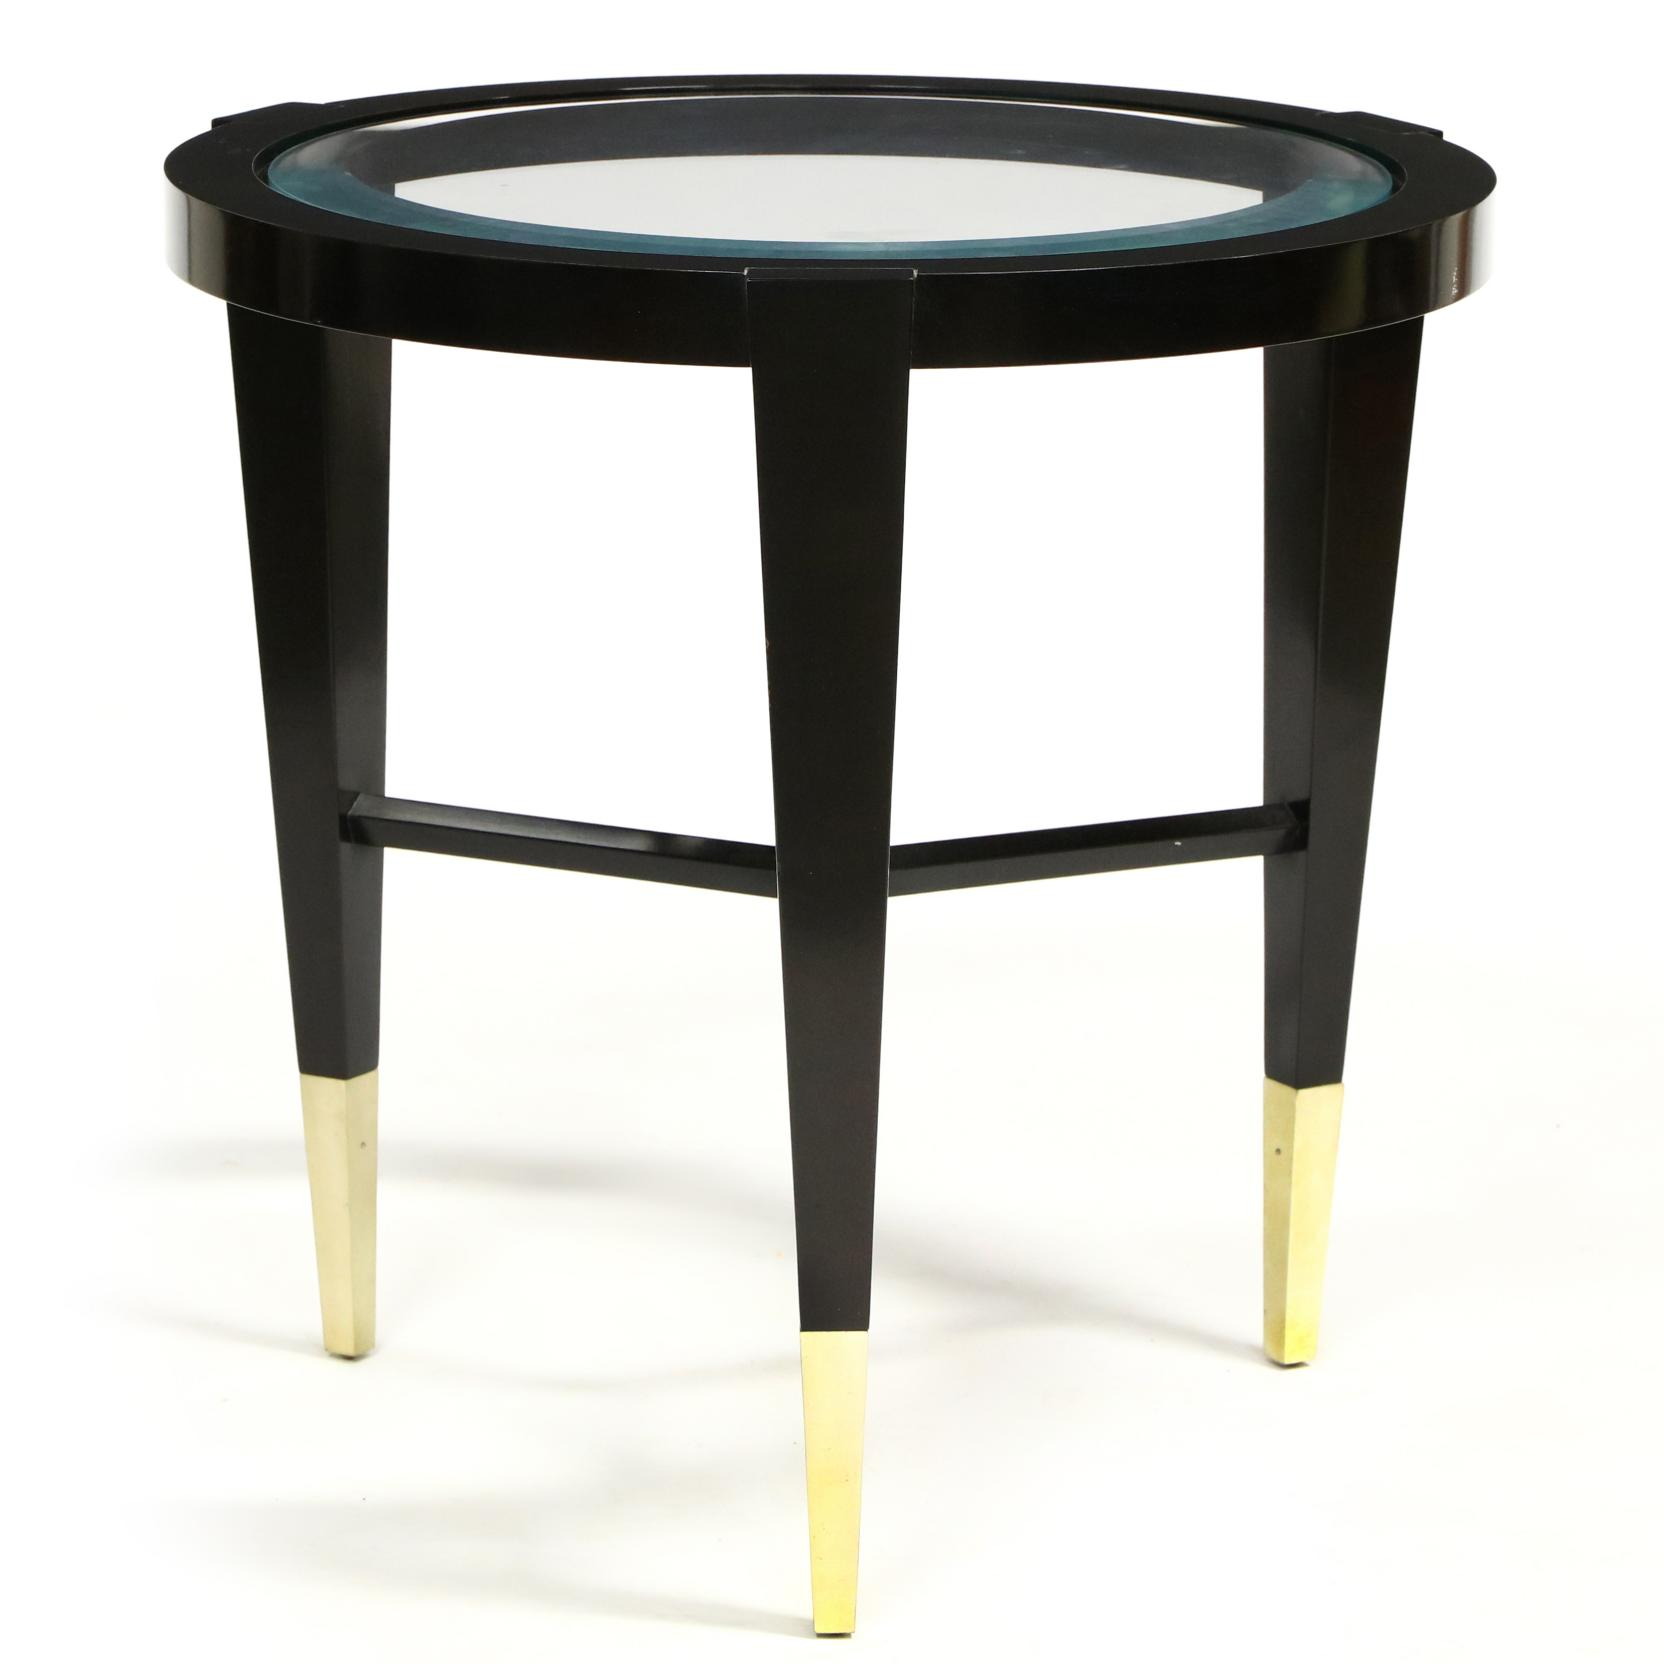 baker-odyssee-table-by-jacques-garcia